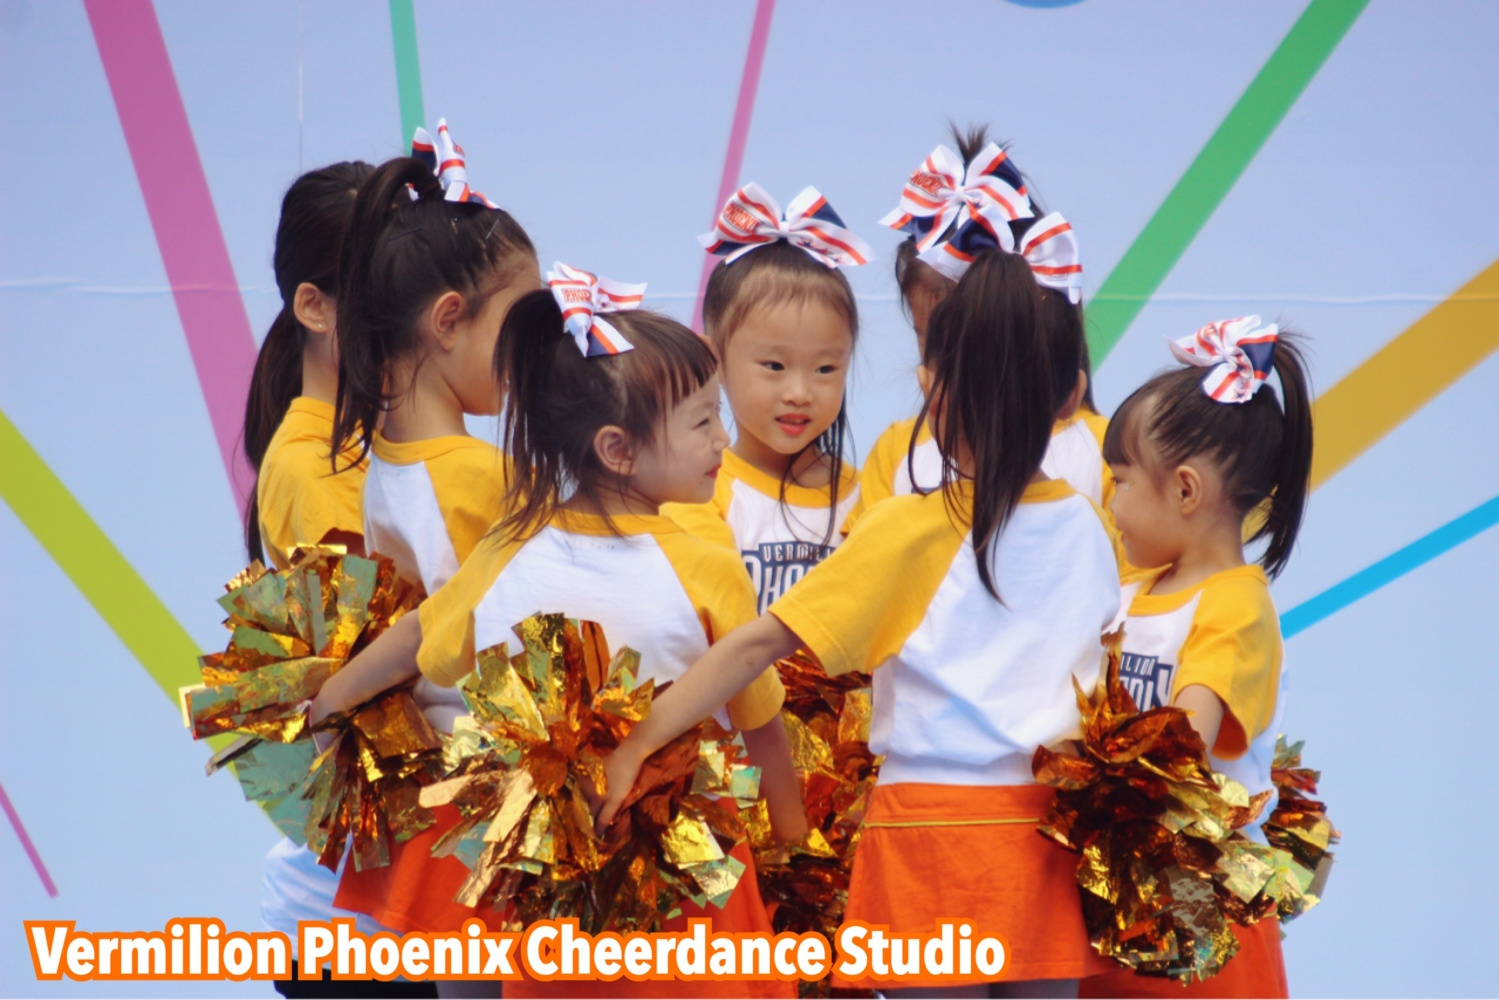 Vermilion Phoenix Cheerdance Studio 네리마 축제